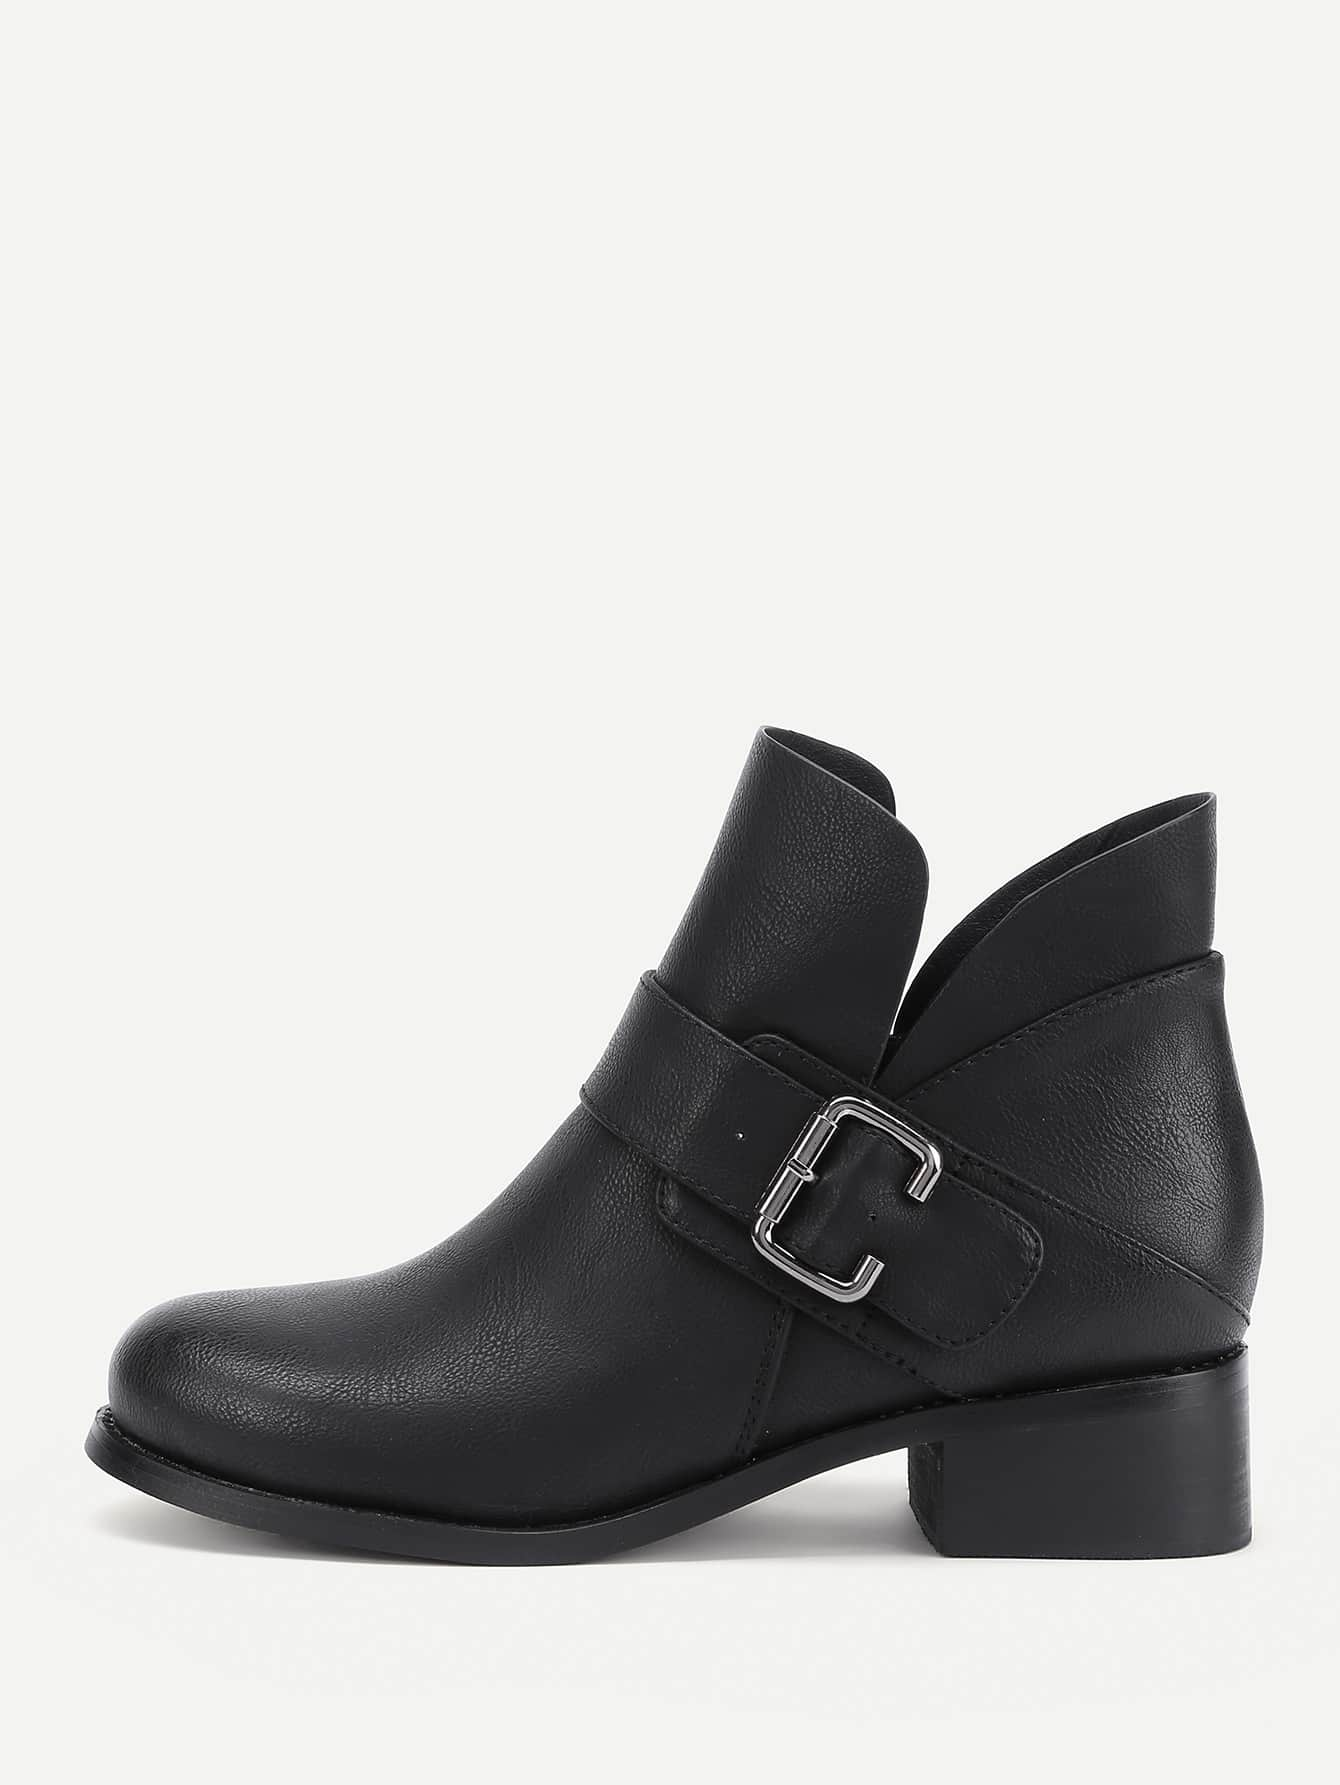 все цены на Side Buckle Decorated PU Ankle Boots